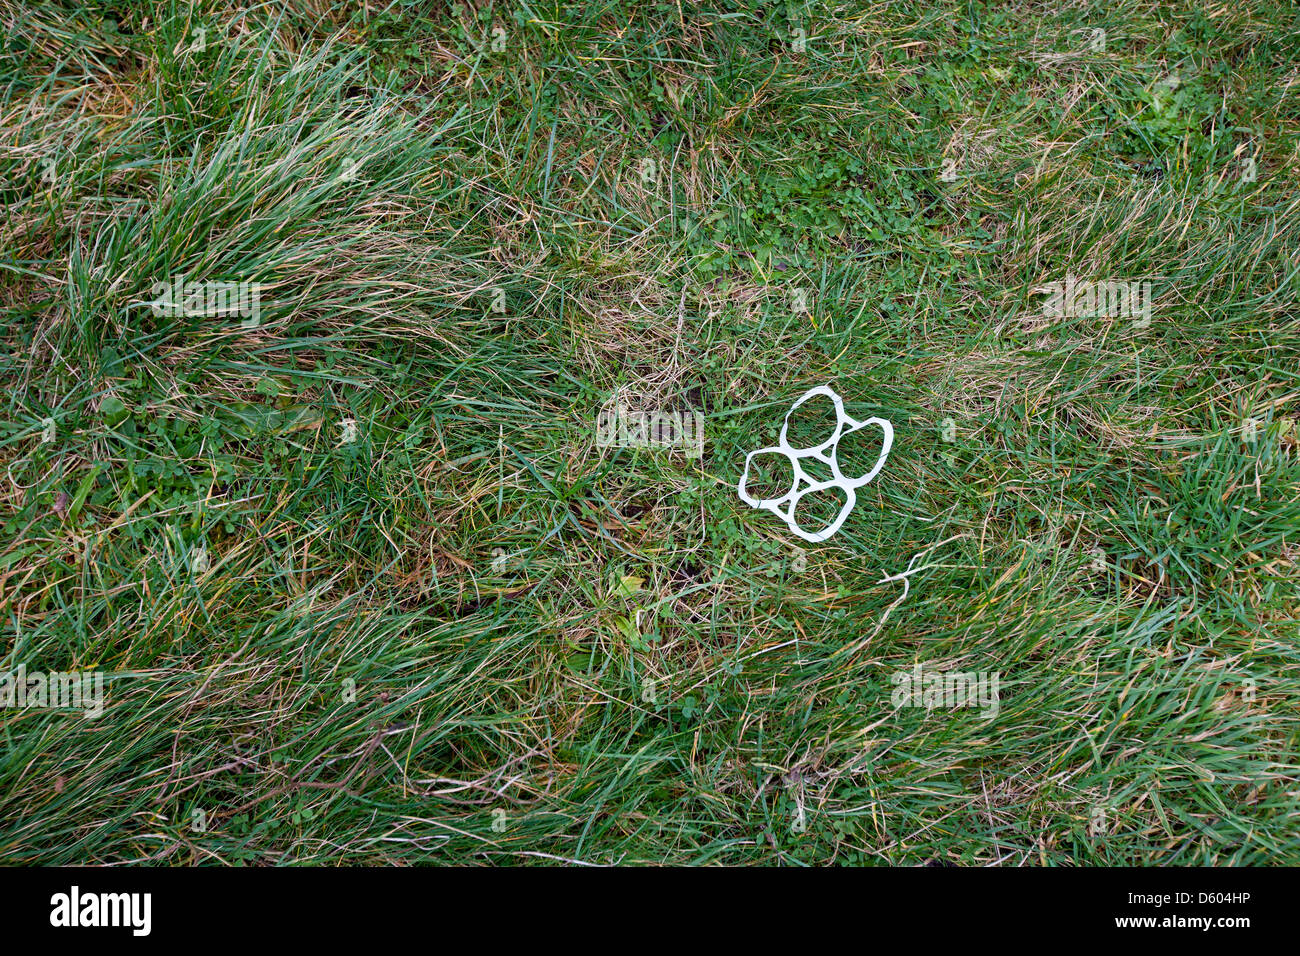 Plastic can rings littered grass - Stock Image